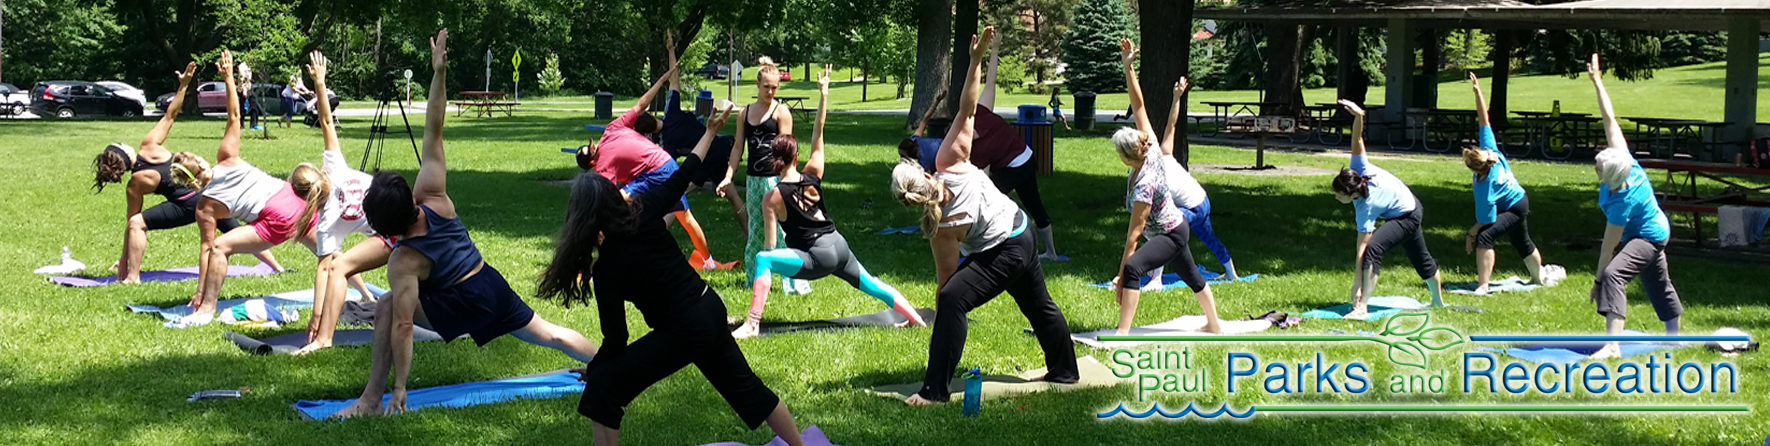 Fitness in the Parks - Free outdoor fitness classes